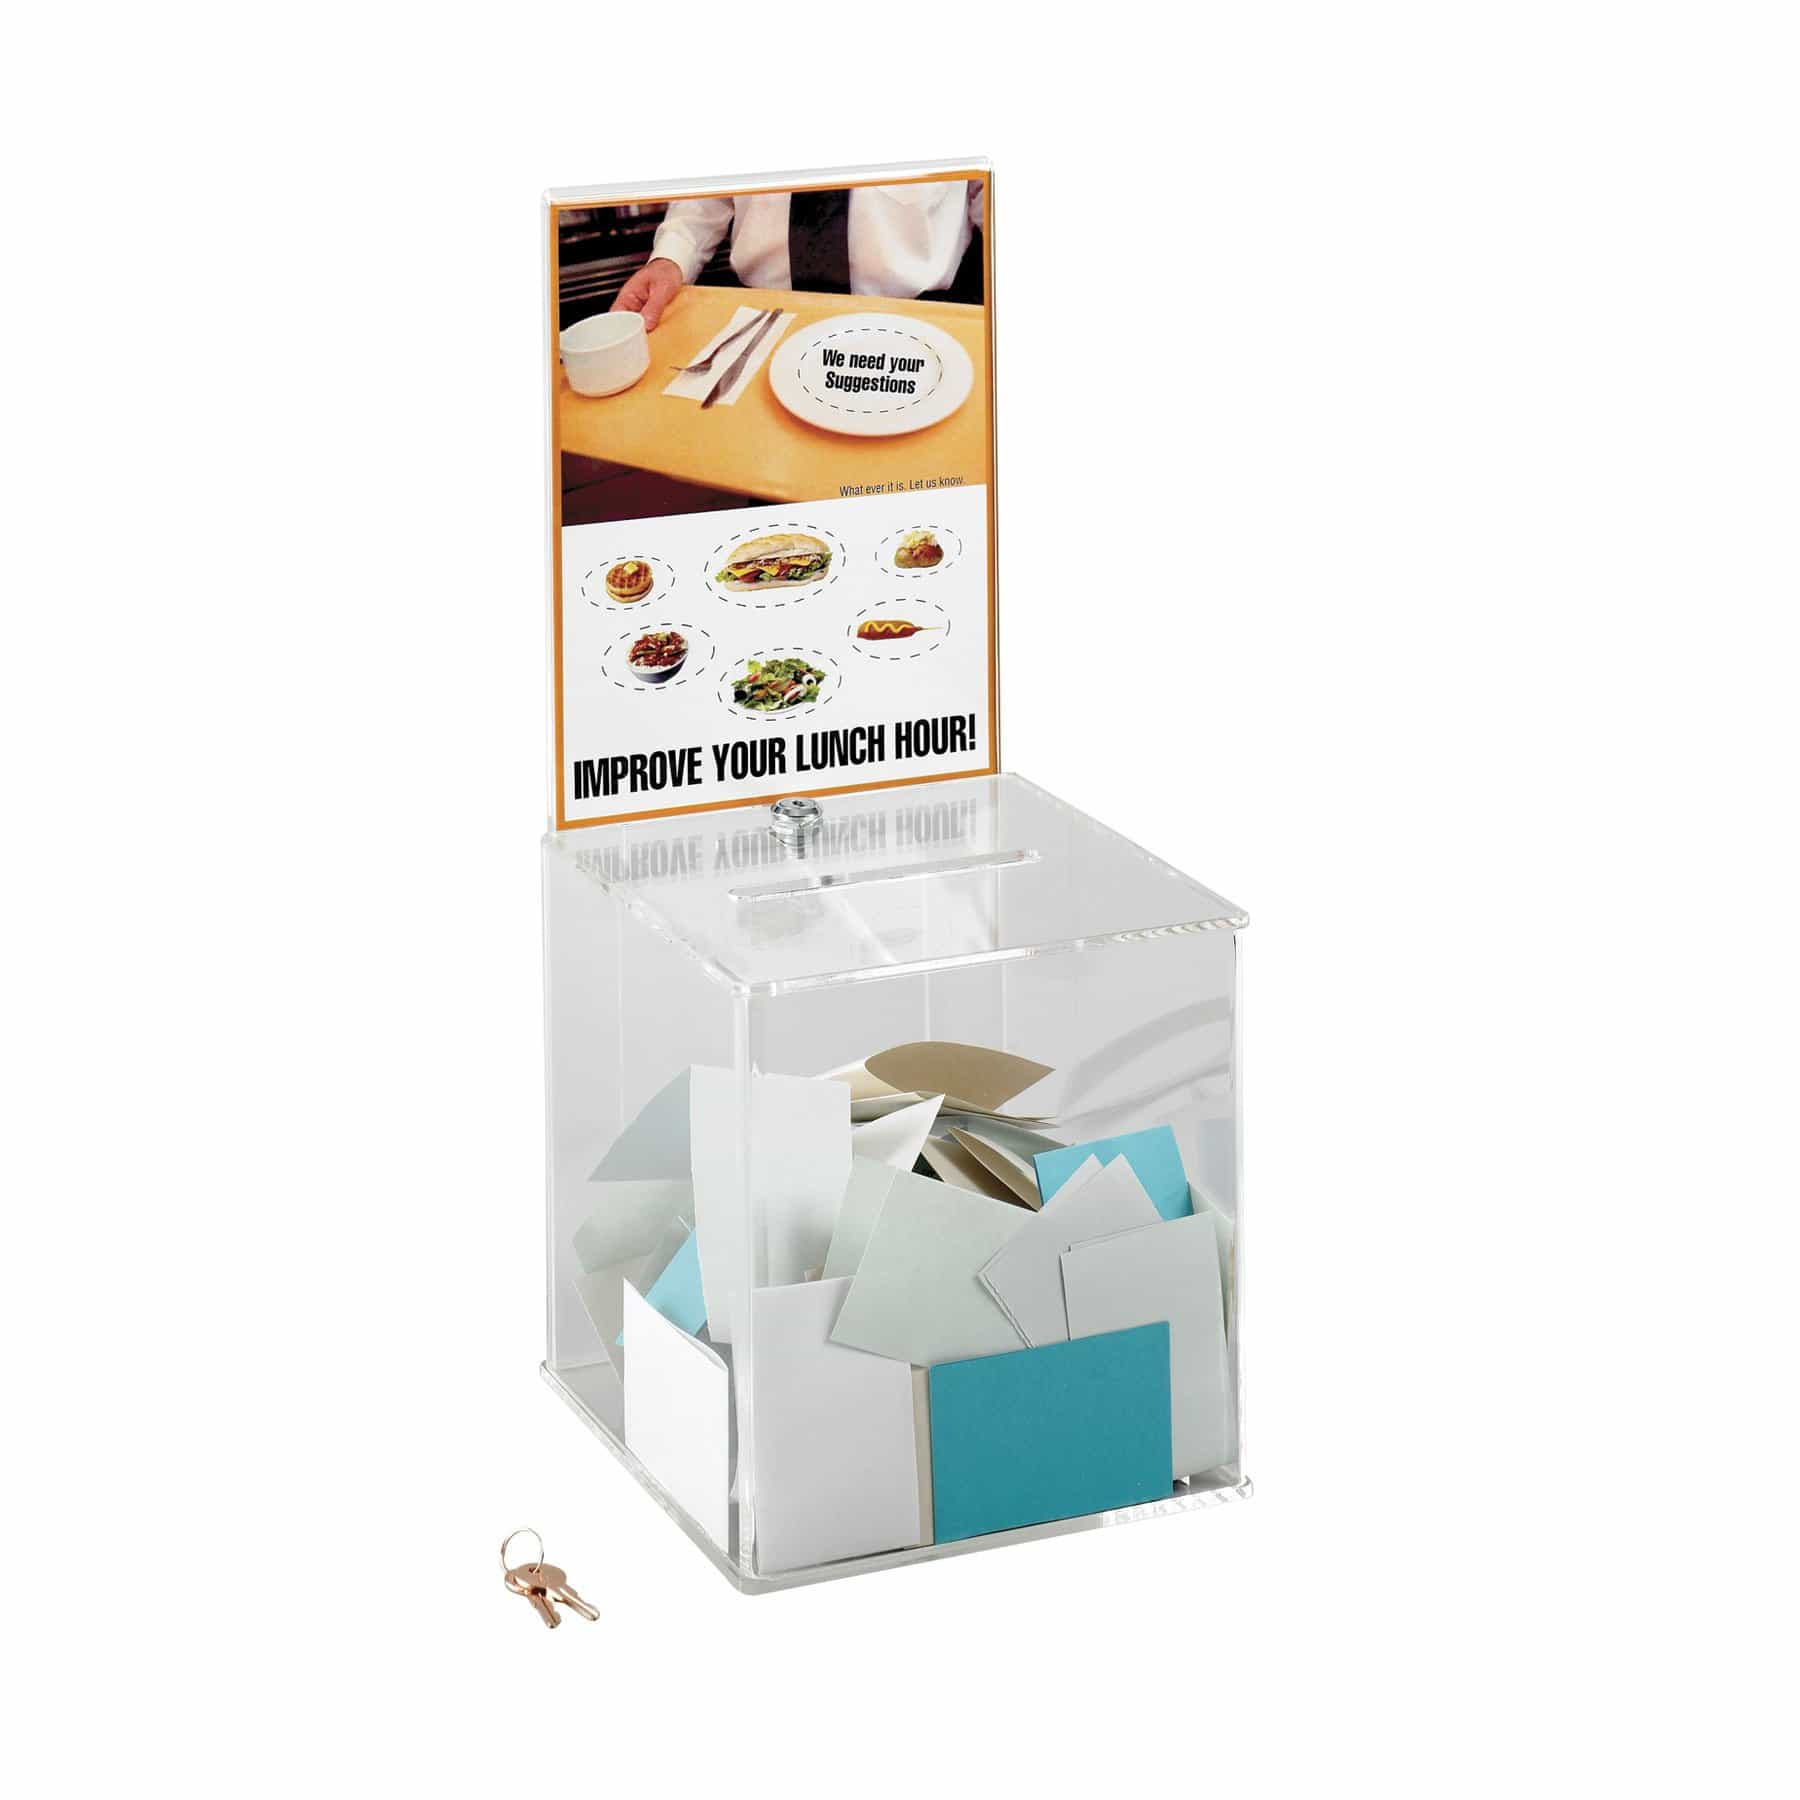 bedinhome - 4234CL Back panel slides Large acrylic drop suggestion box Includes lock with two keys - Safco - Suggestion Box